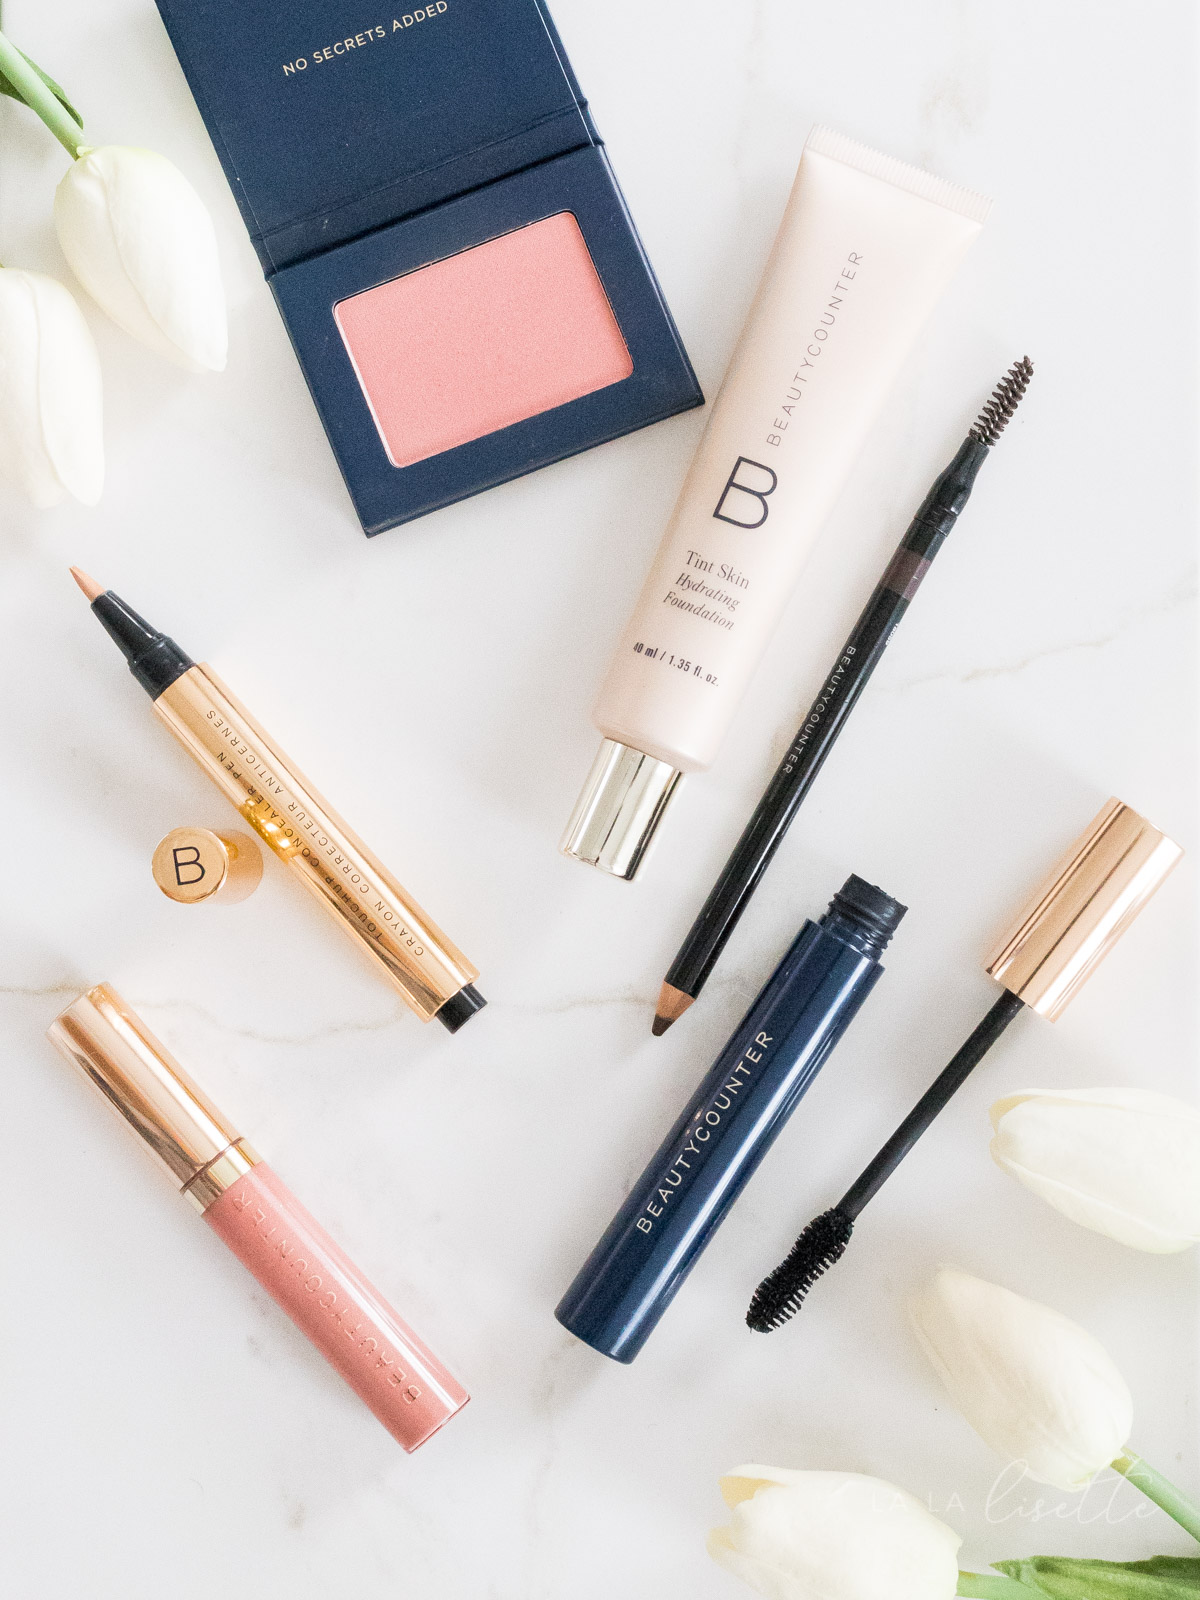 Flawless in Five makeup kit by Beautycounter